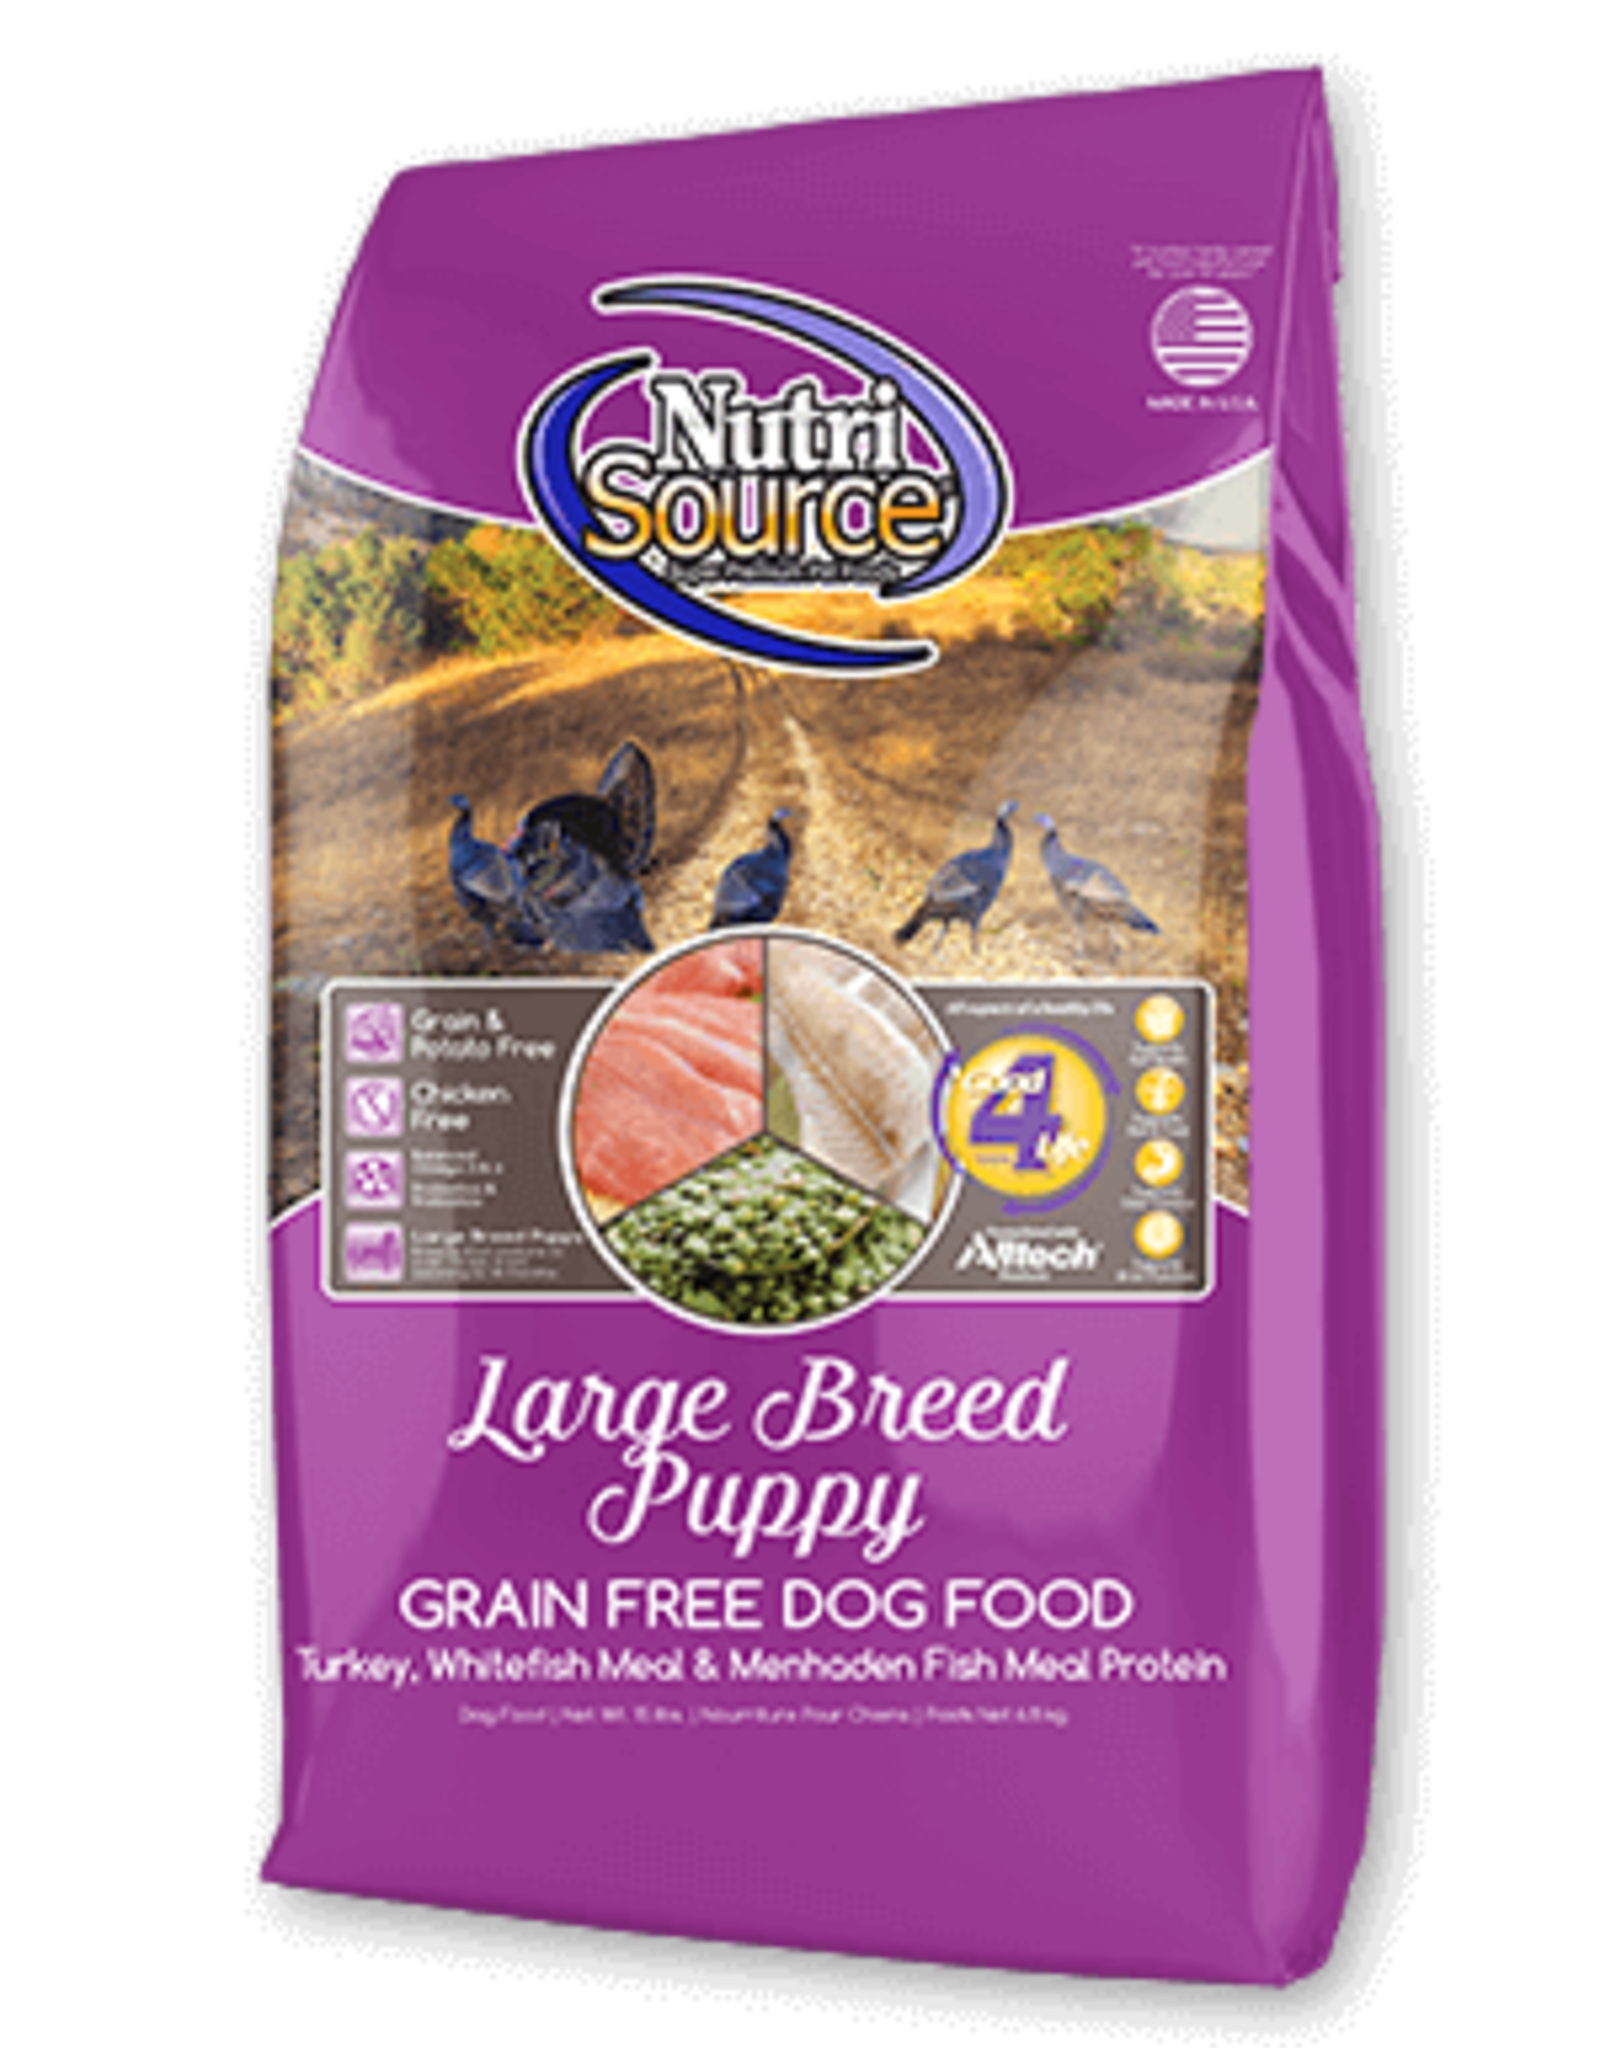 Nutrisource GF Dog Food Large Breed Puppy